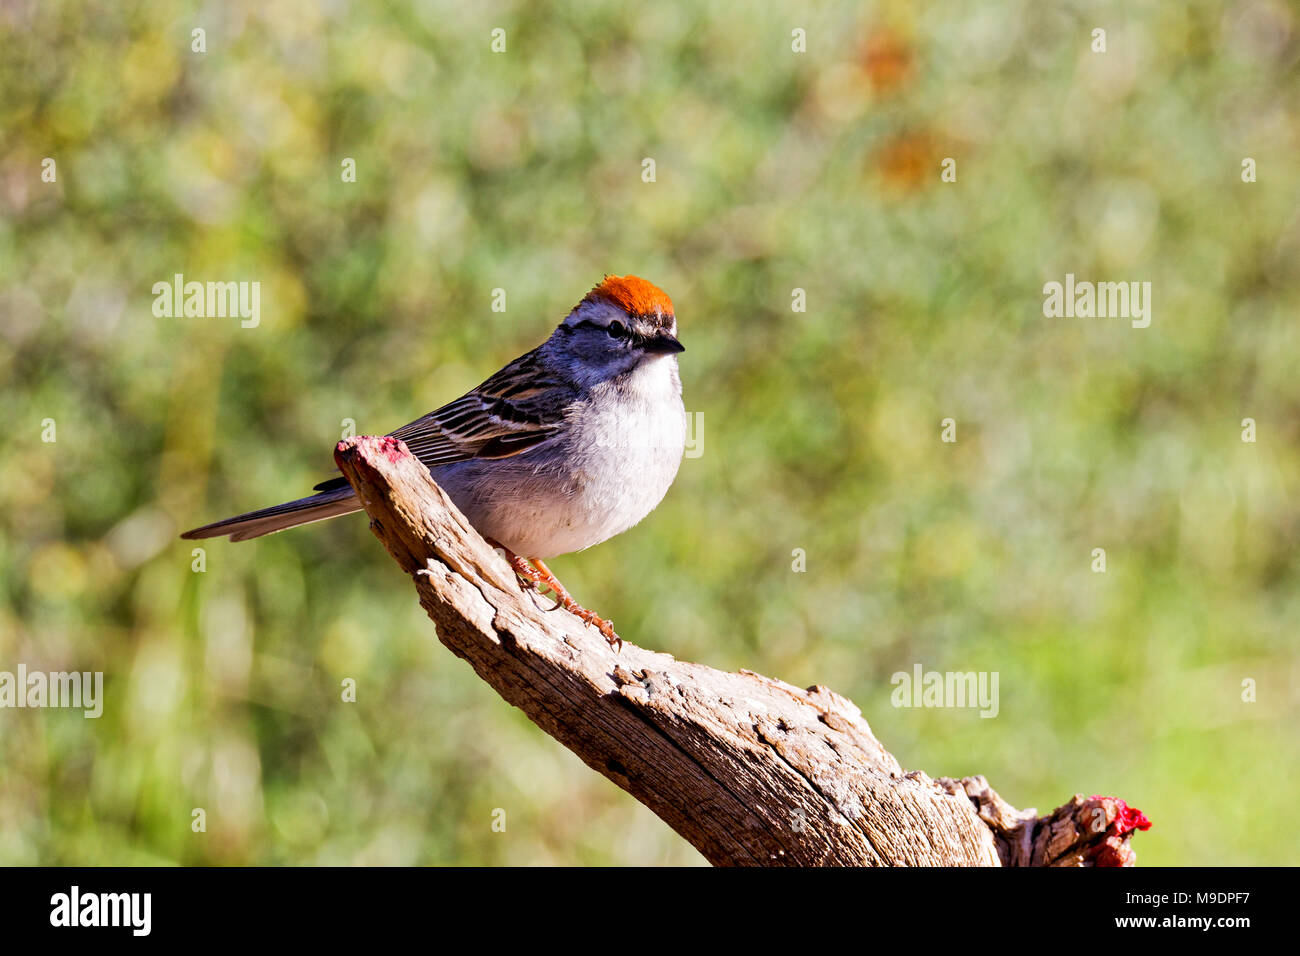 42,885.02837 close up of an adult Chipping Sparrow (Spizella passerina) in breeding plumage on a dead tree branch, greenish yellow background - Stock Image